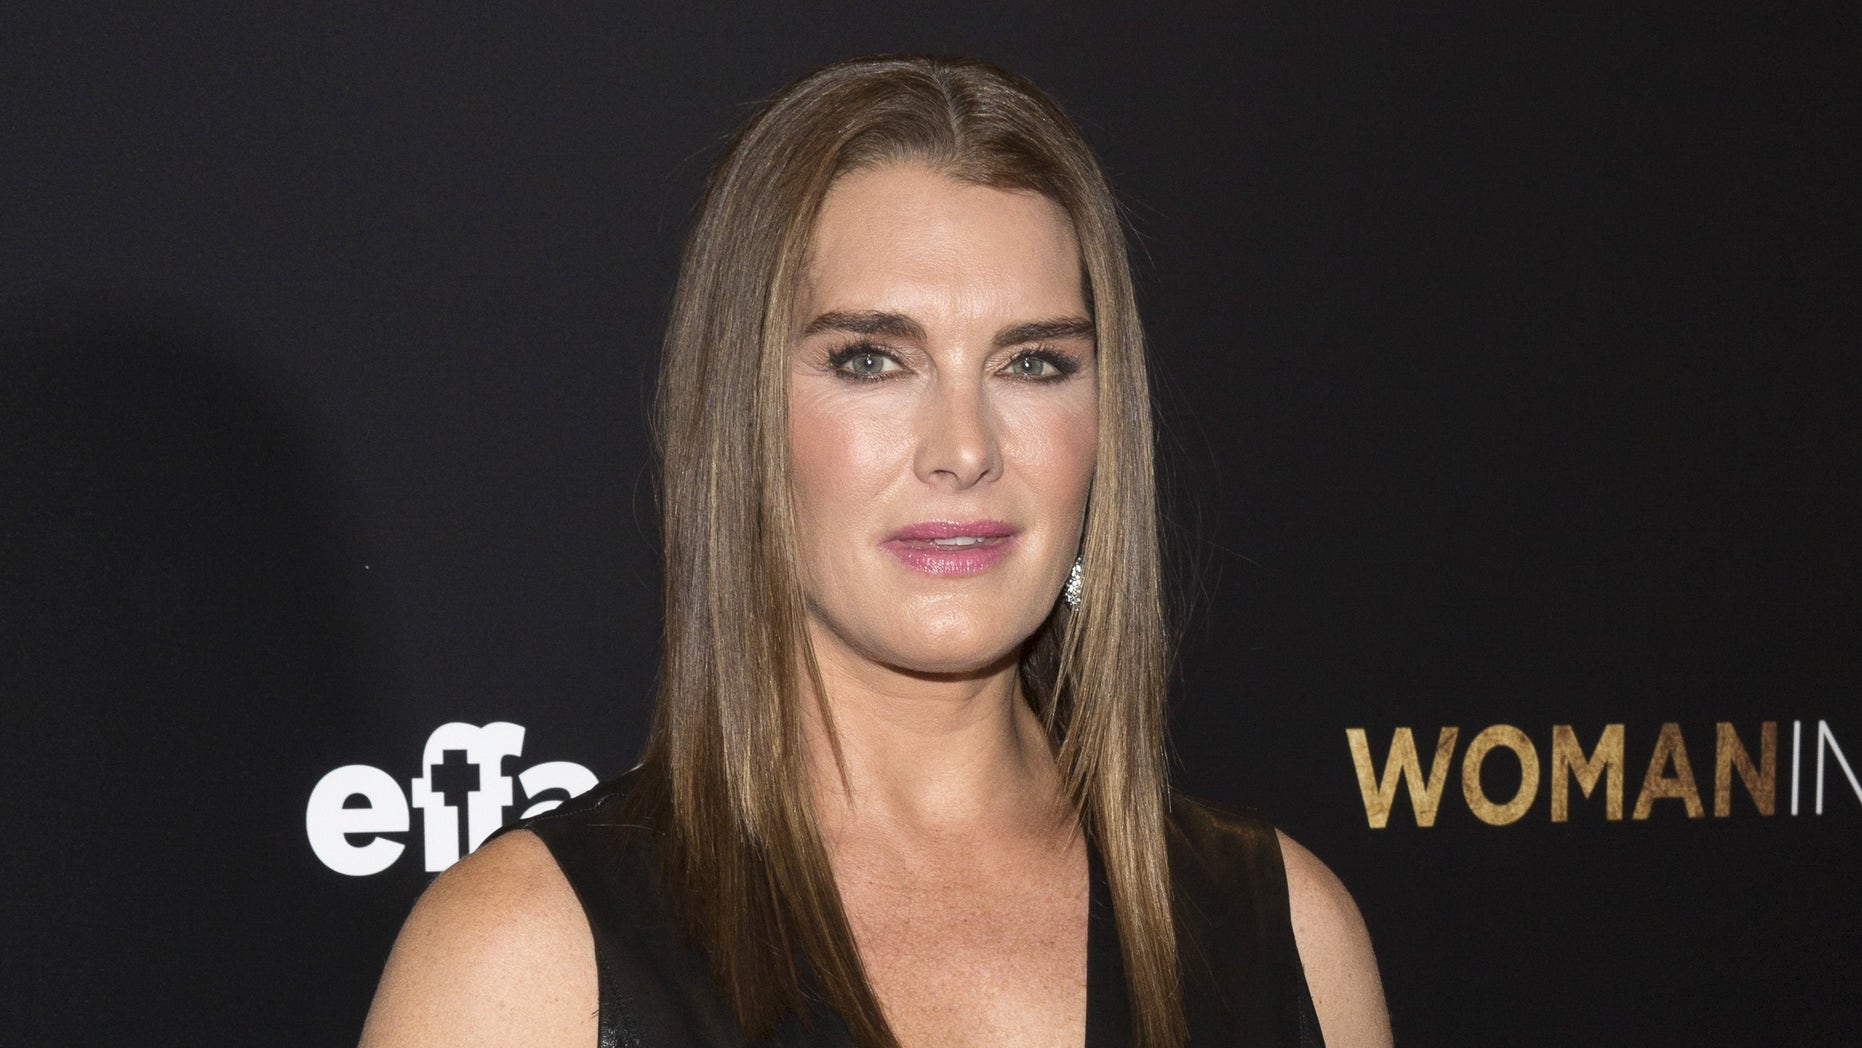 """March 30, 2015. Actress Brooke Shields attends the """"Woman in Gold"""" premiere in New York."""